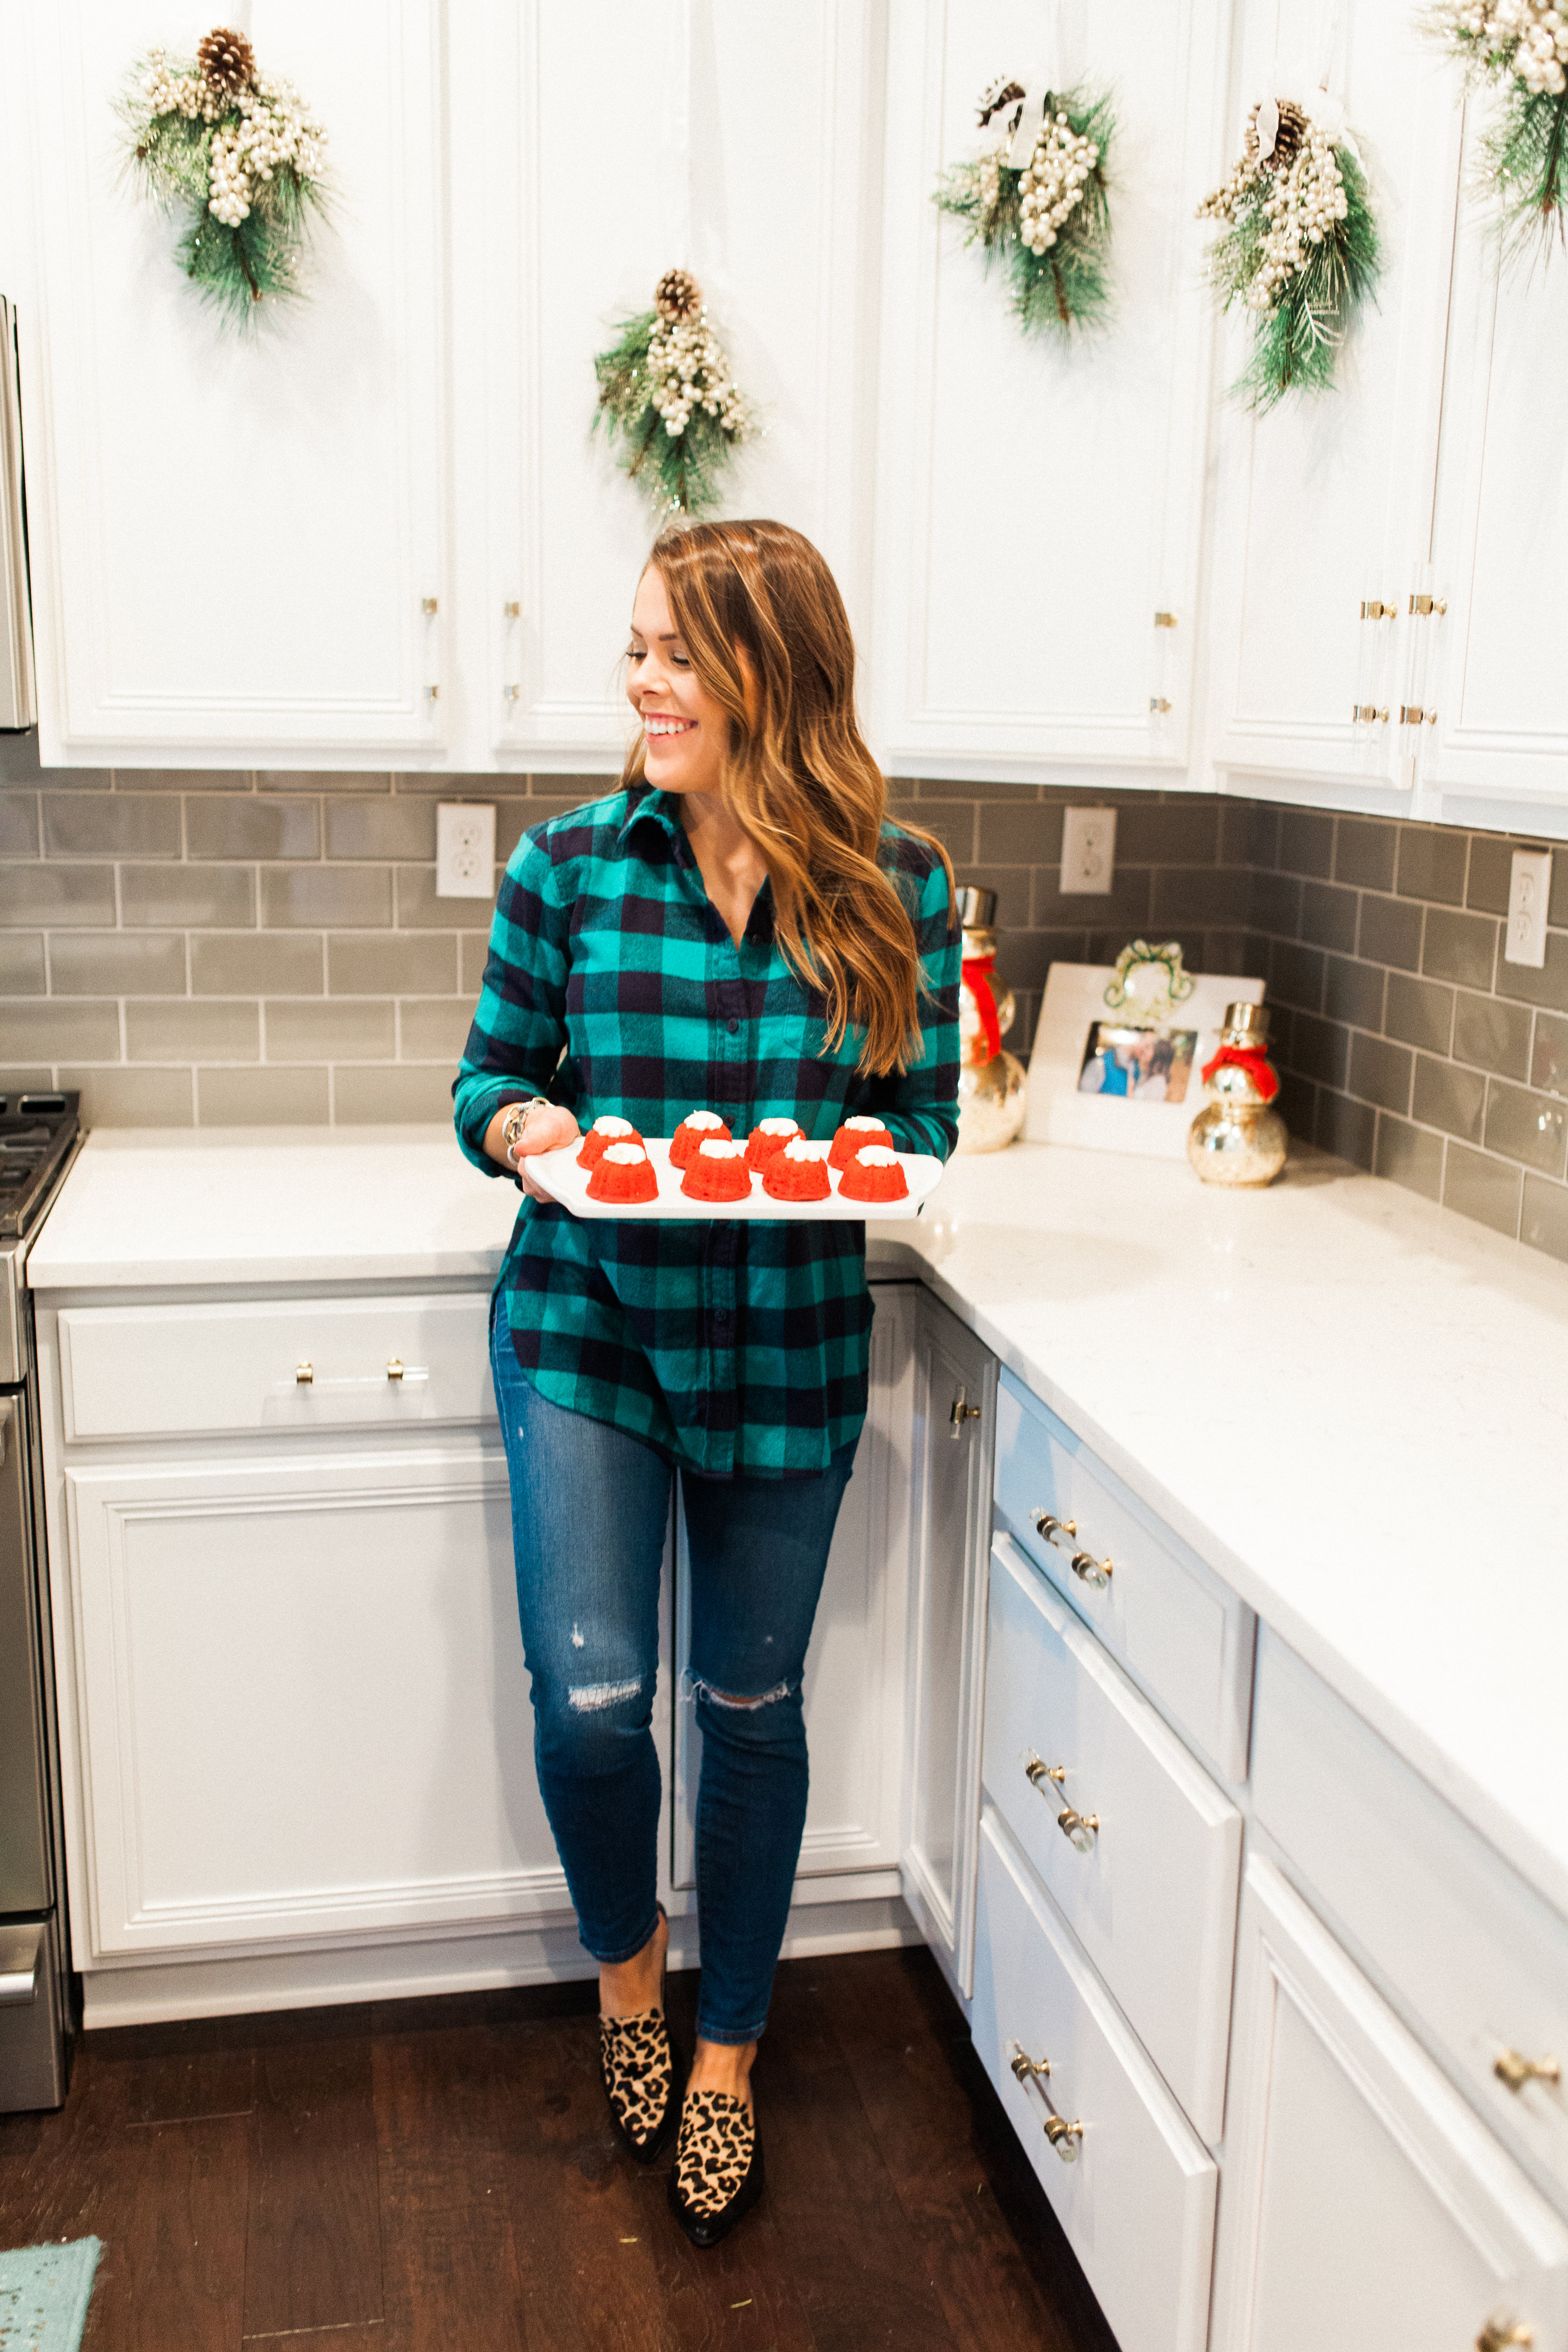 Holiday Gifts for the home / hostess gifts